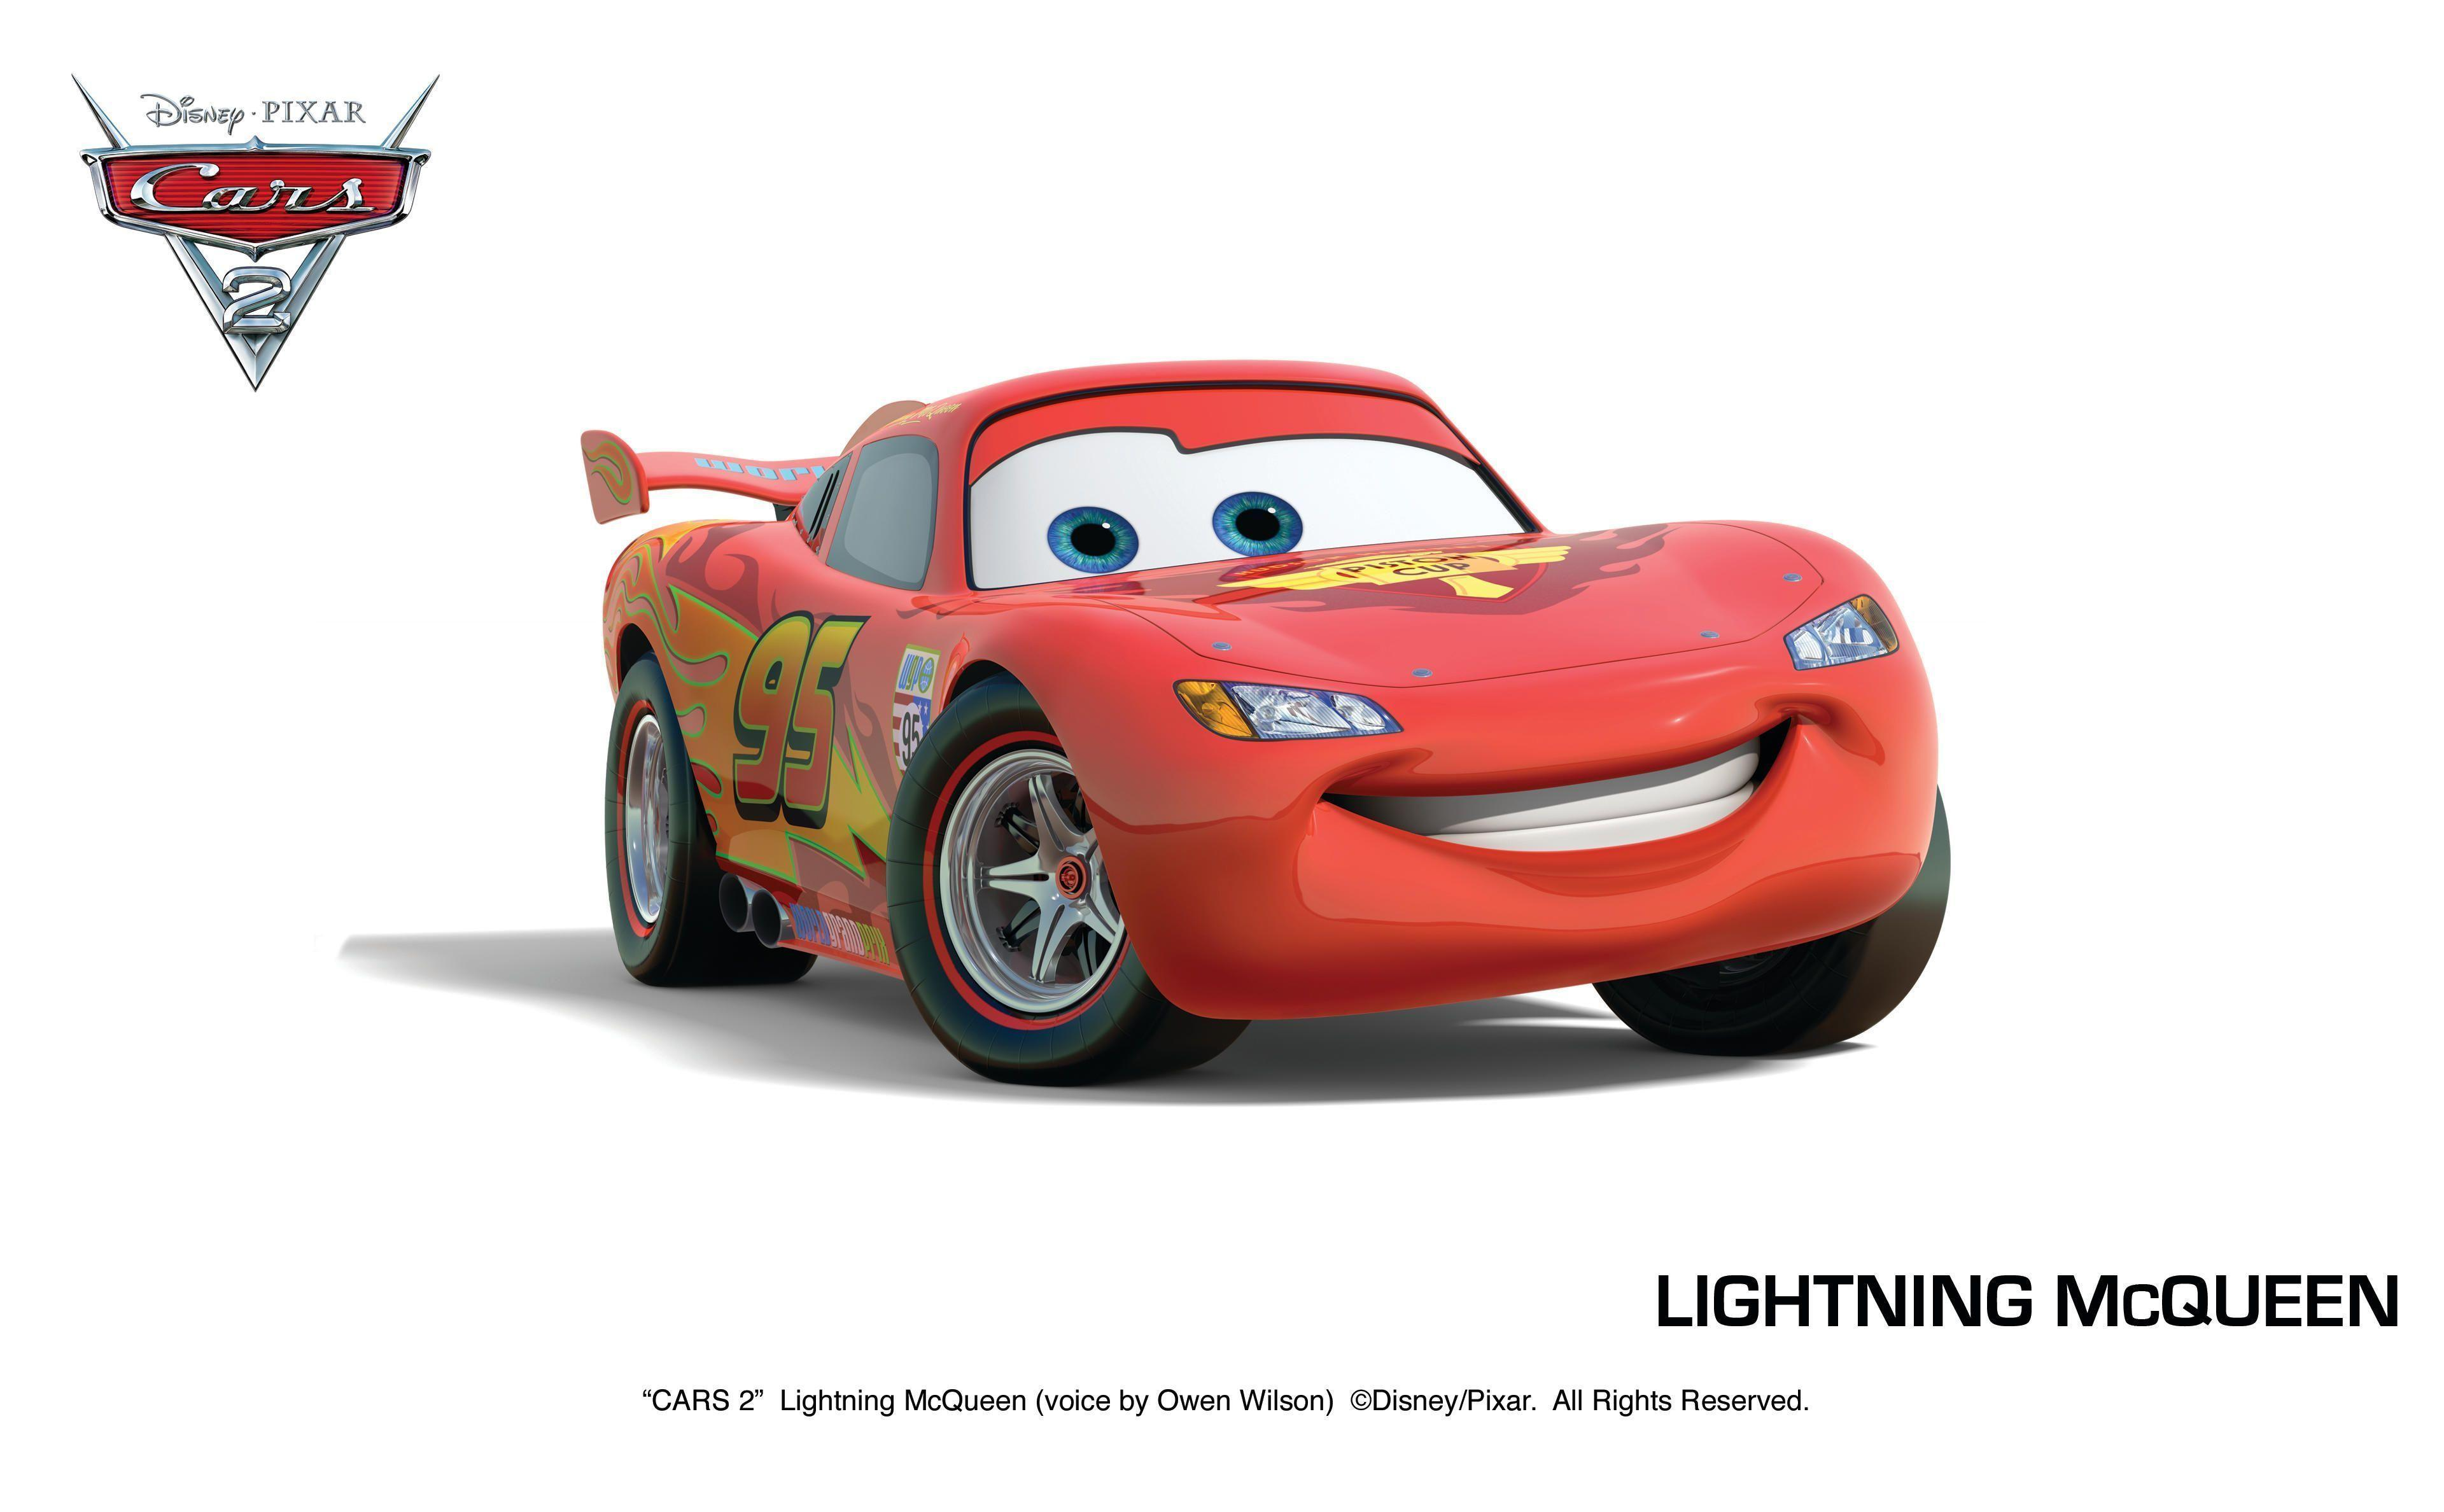 Disney Cars Wallpapers Free Download: Lightning McQueen Wallpapers